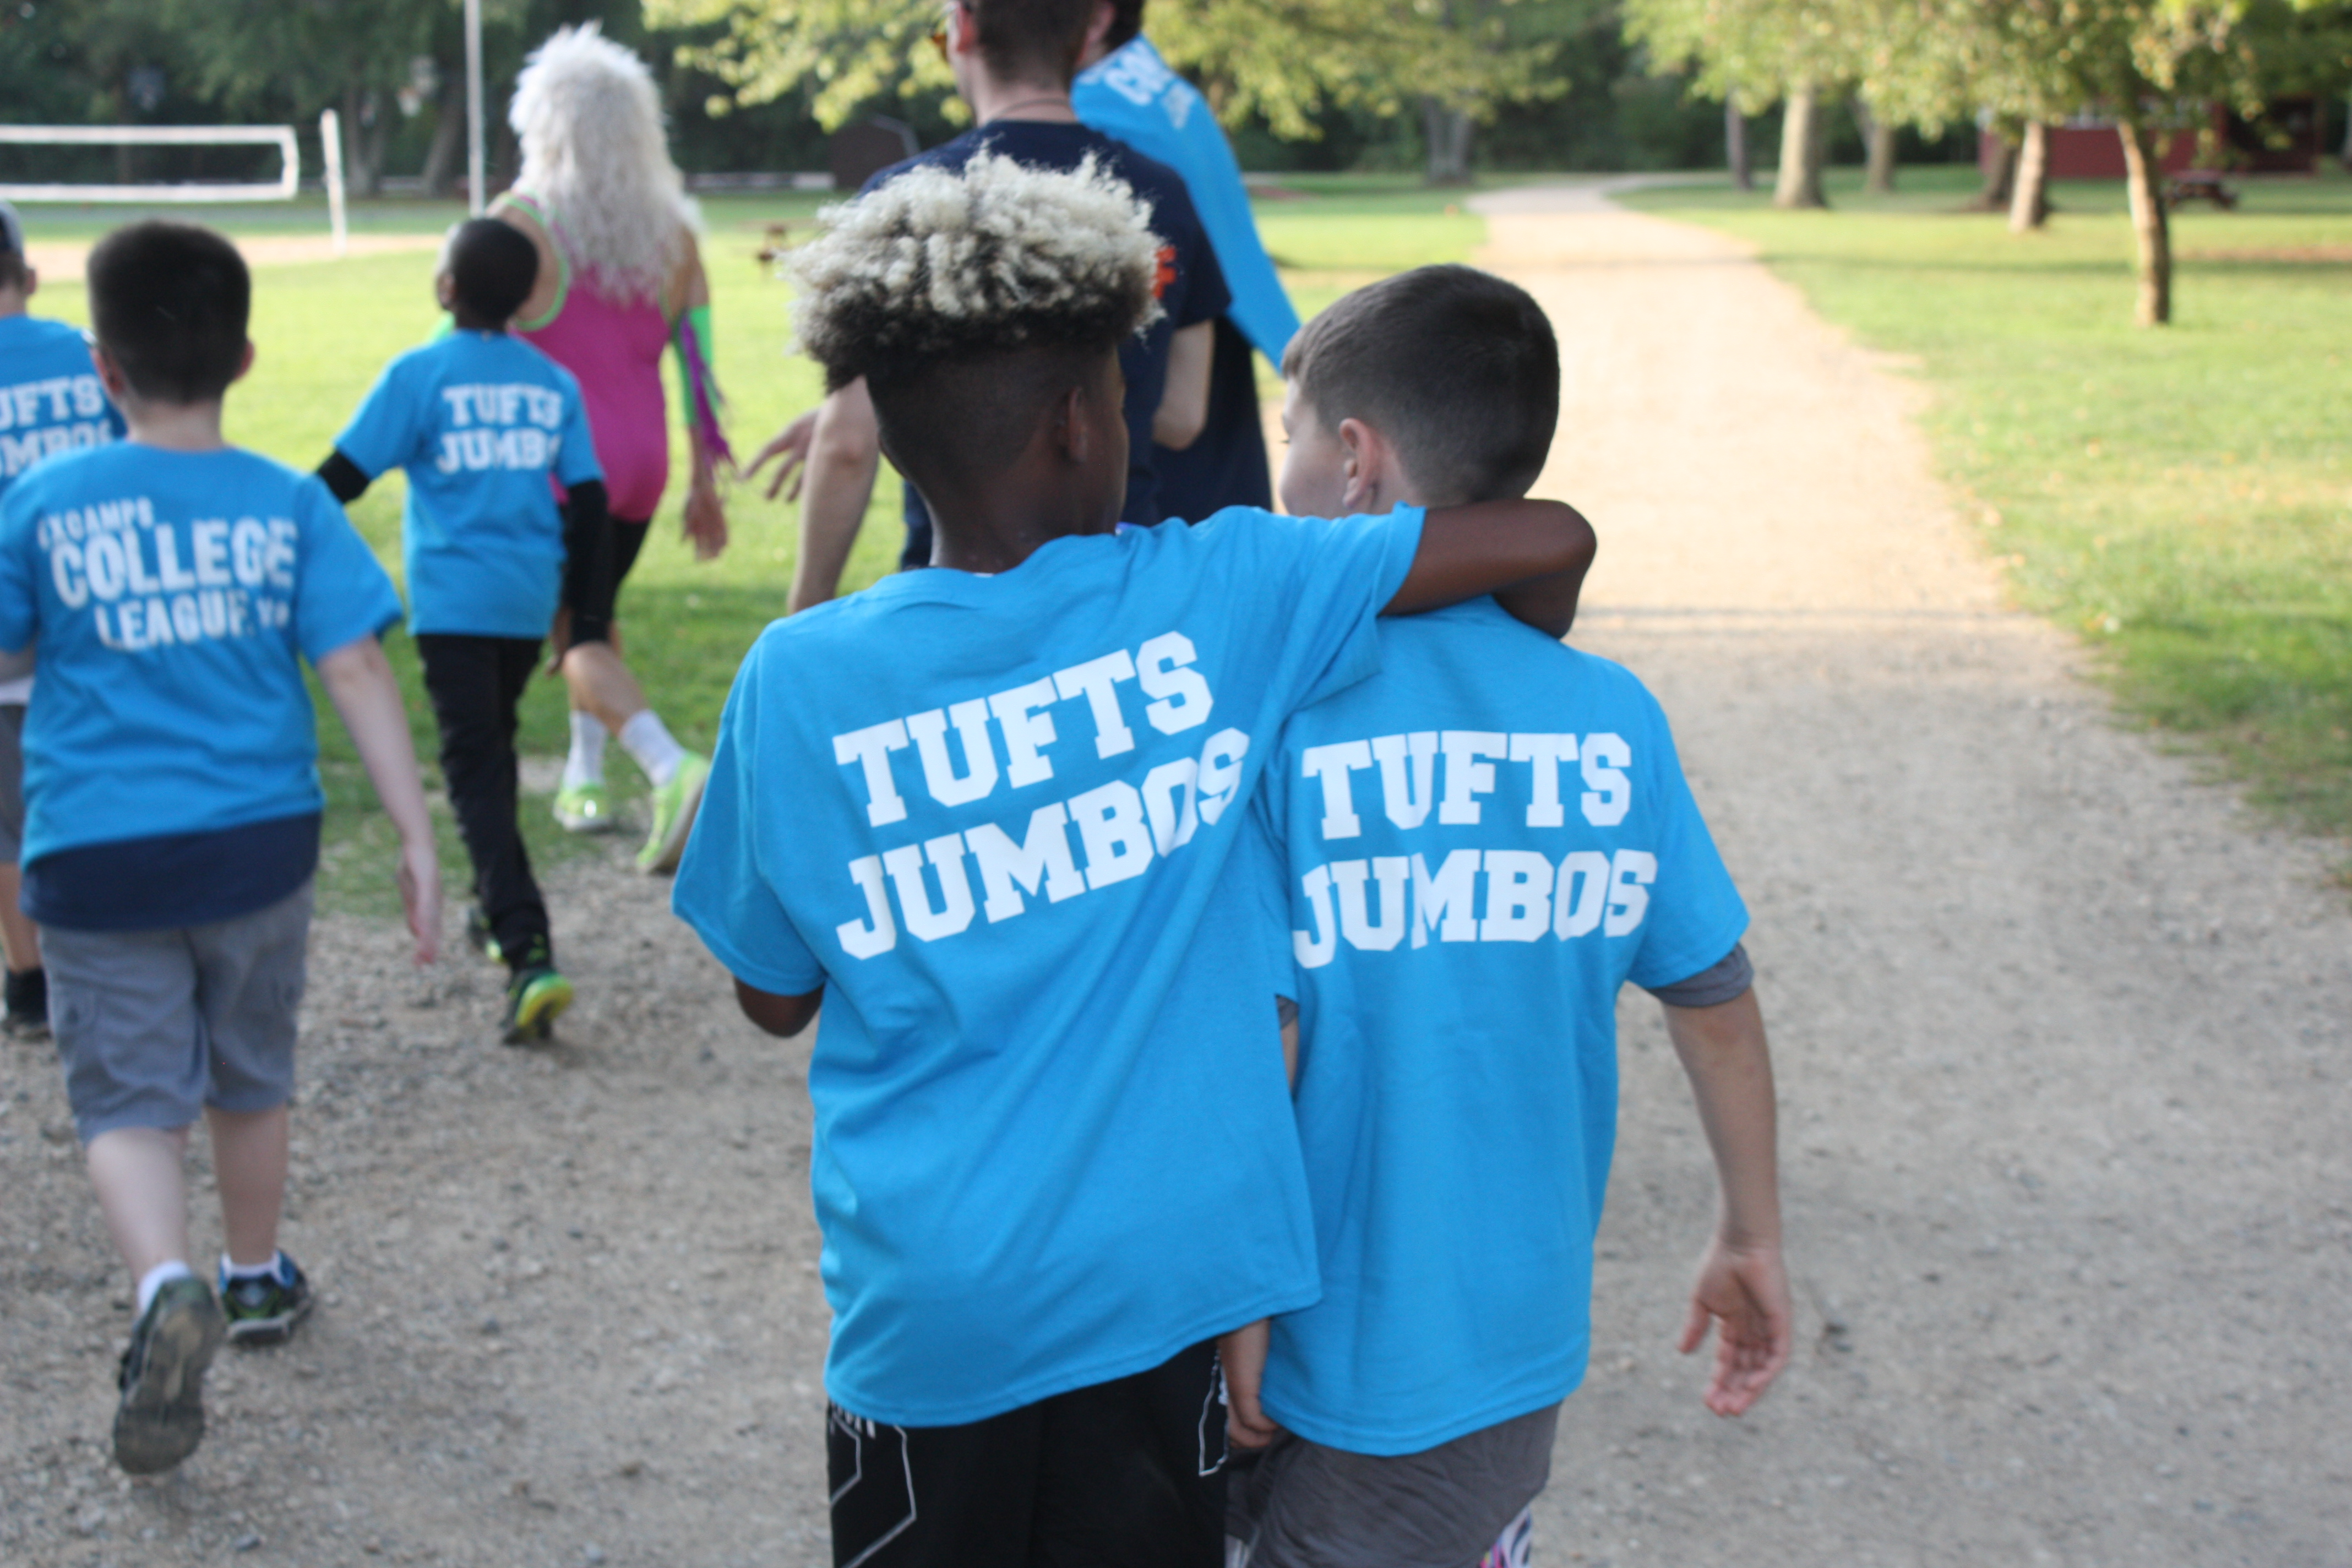 Two campers walking arm in arm at Experience Camp.